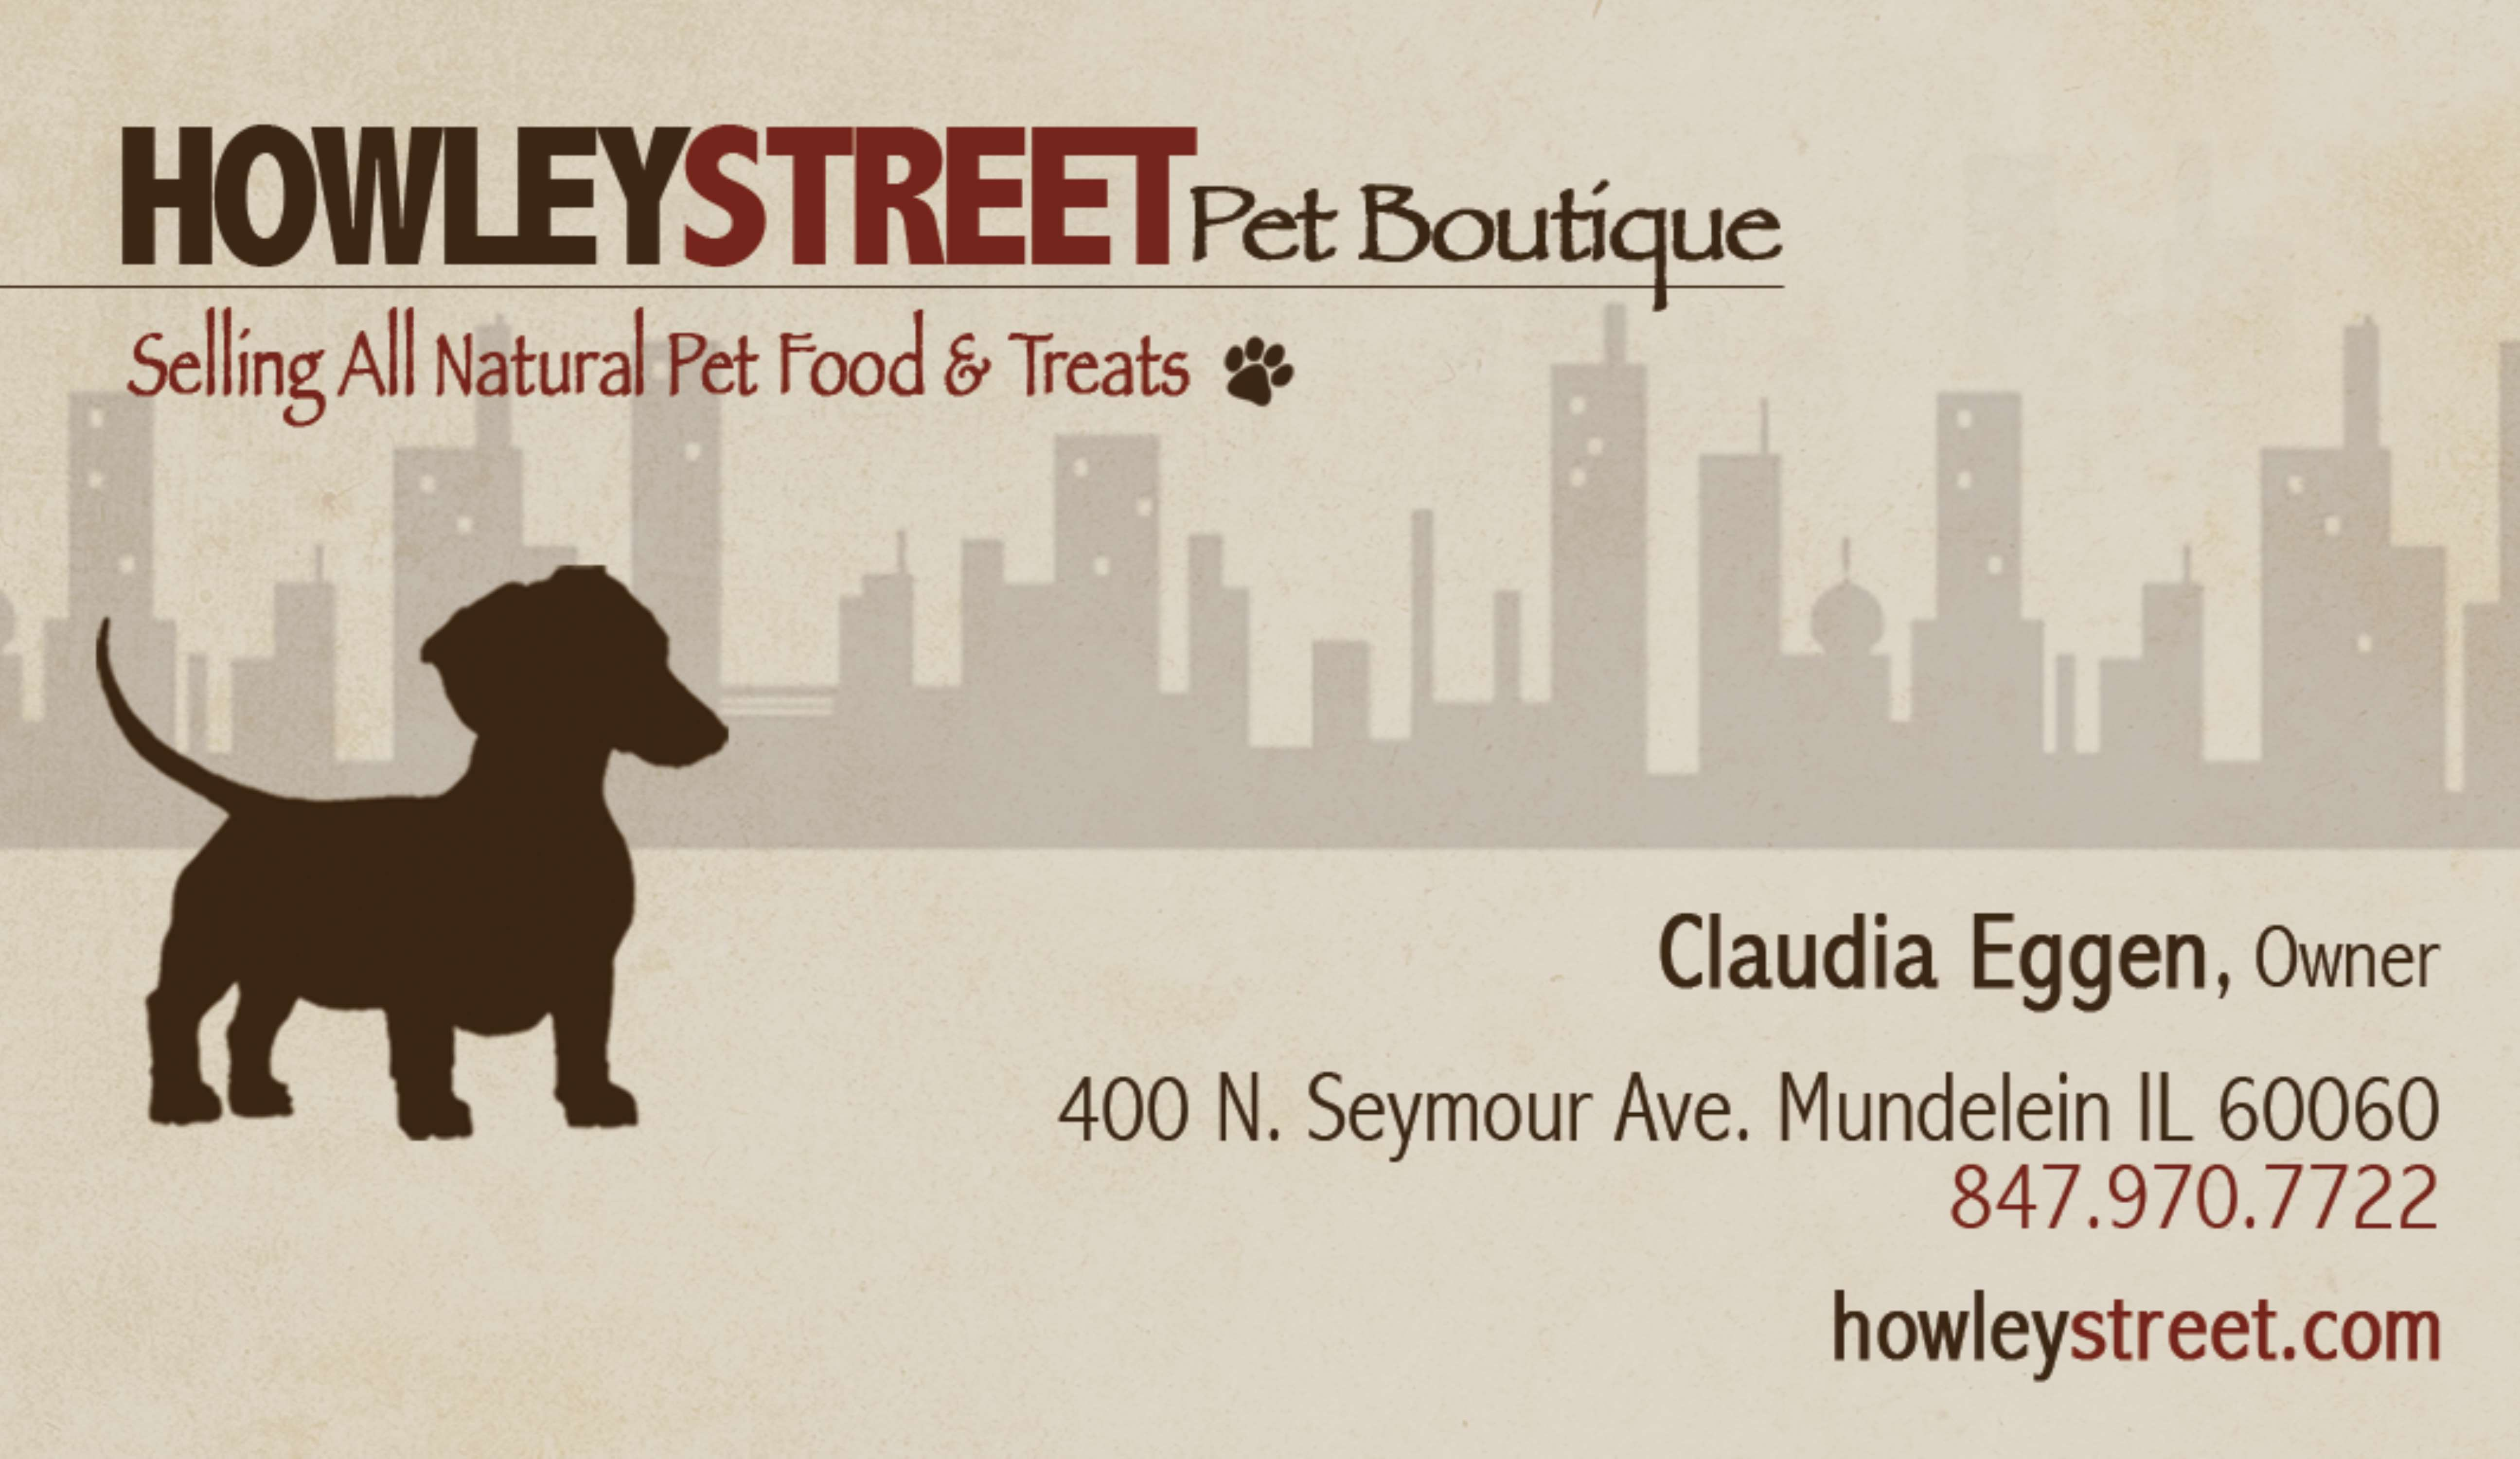 Howley Street Pet Boutique